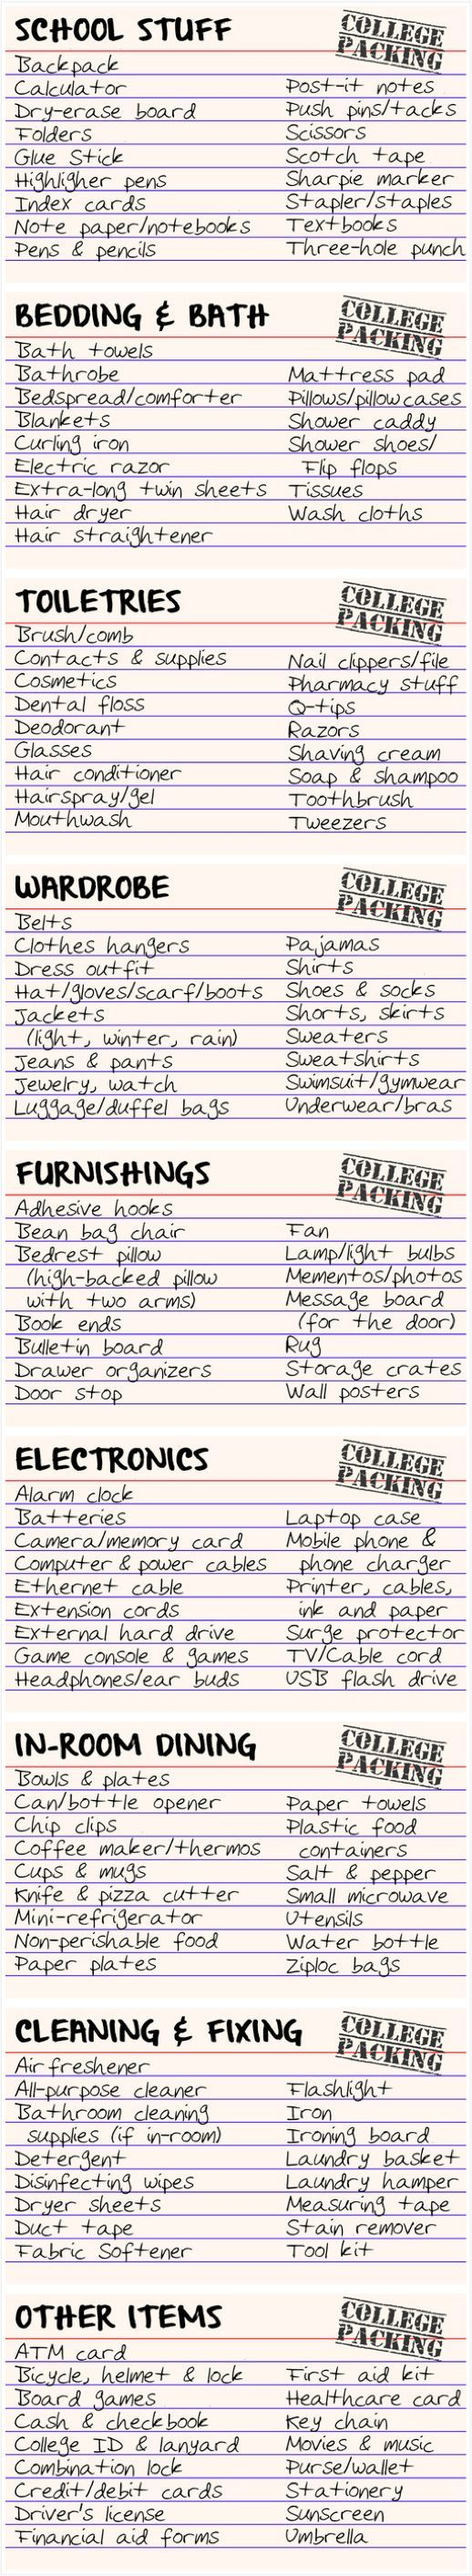 ◖ pin: mlpstephanie ◗ College packing list